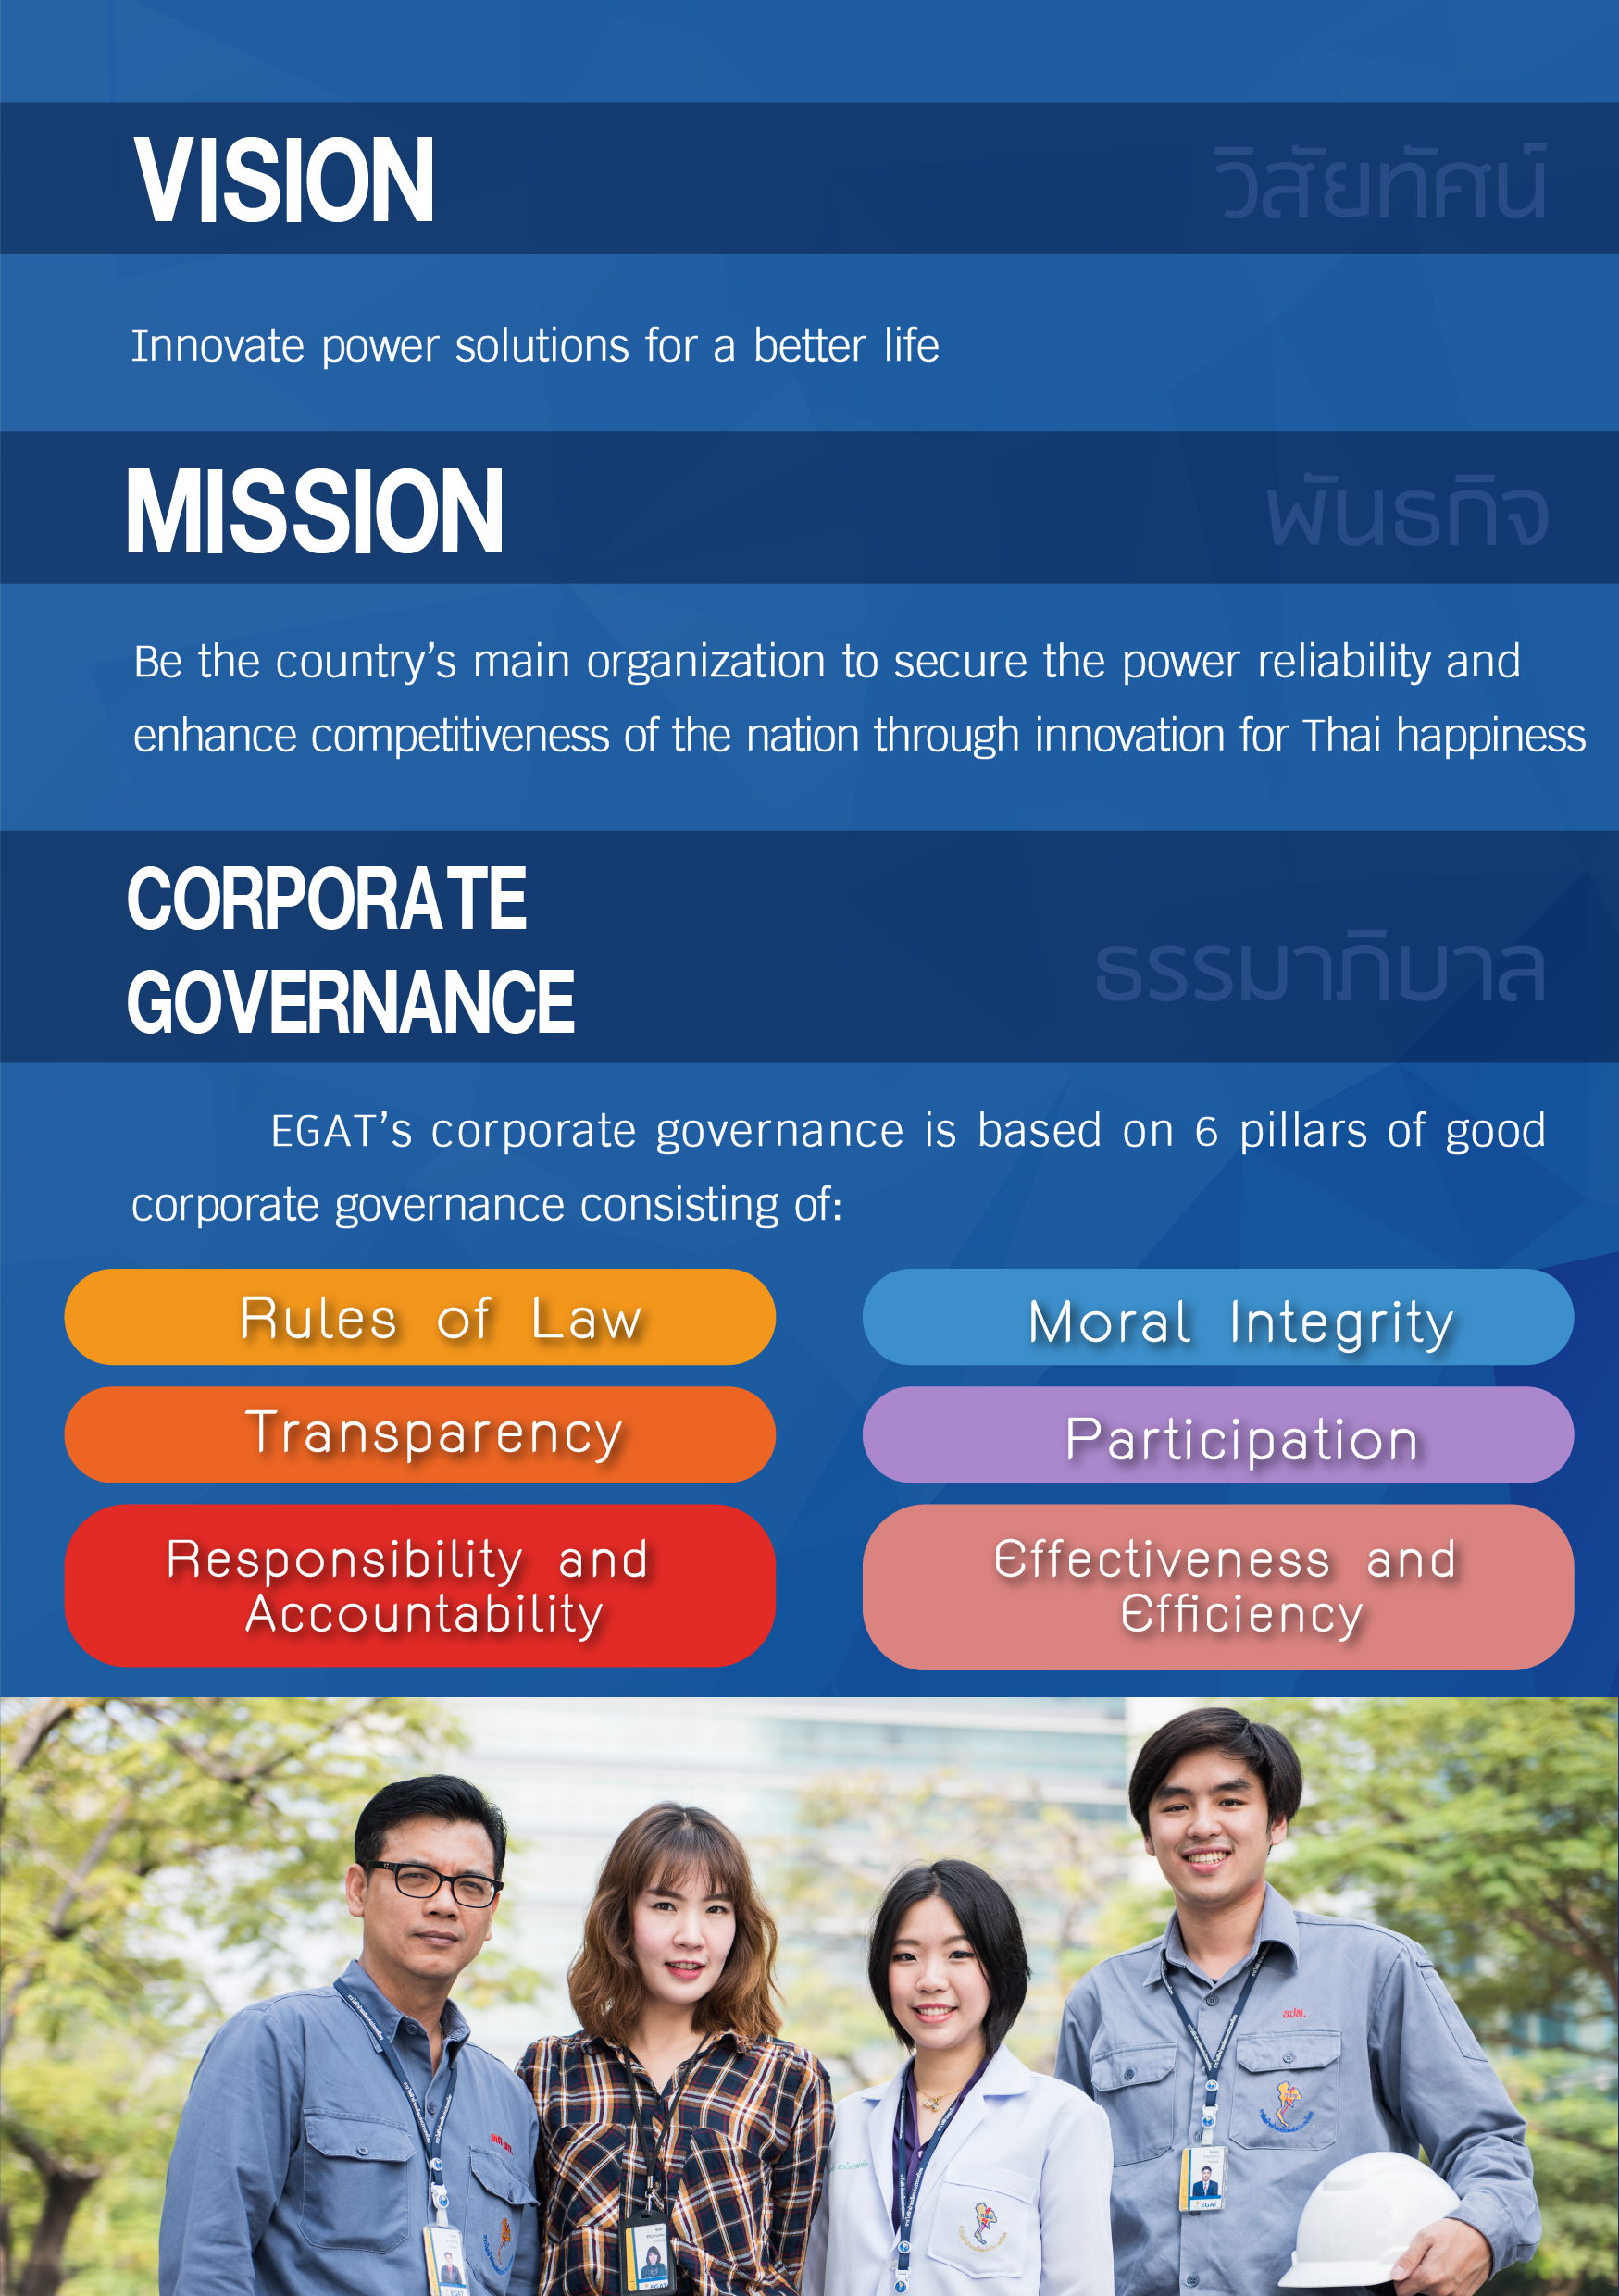 Vision Mission and Corporate Governance